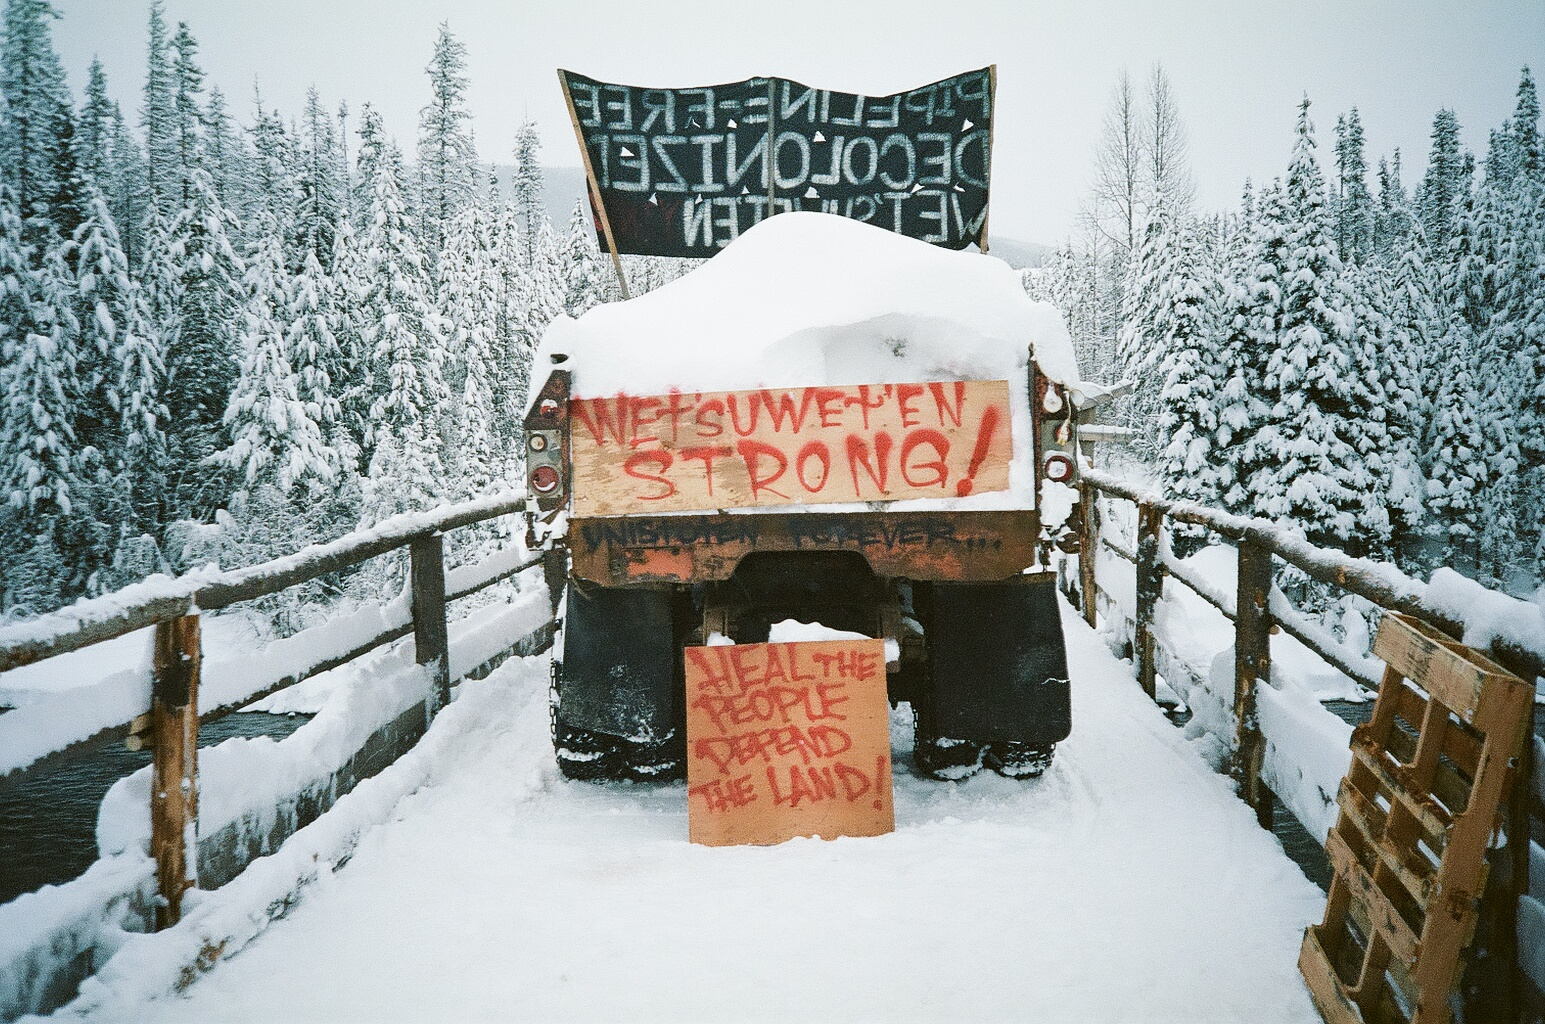 Bridge over the Wedzin Kwa (Morice River) in Wet'suwet'en territory December 2019 - Photo by Michael Toledano